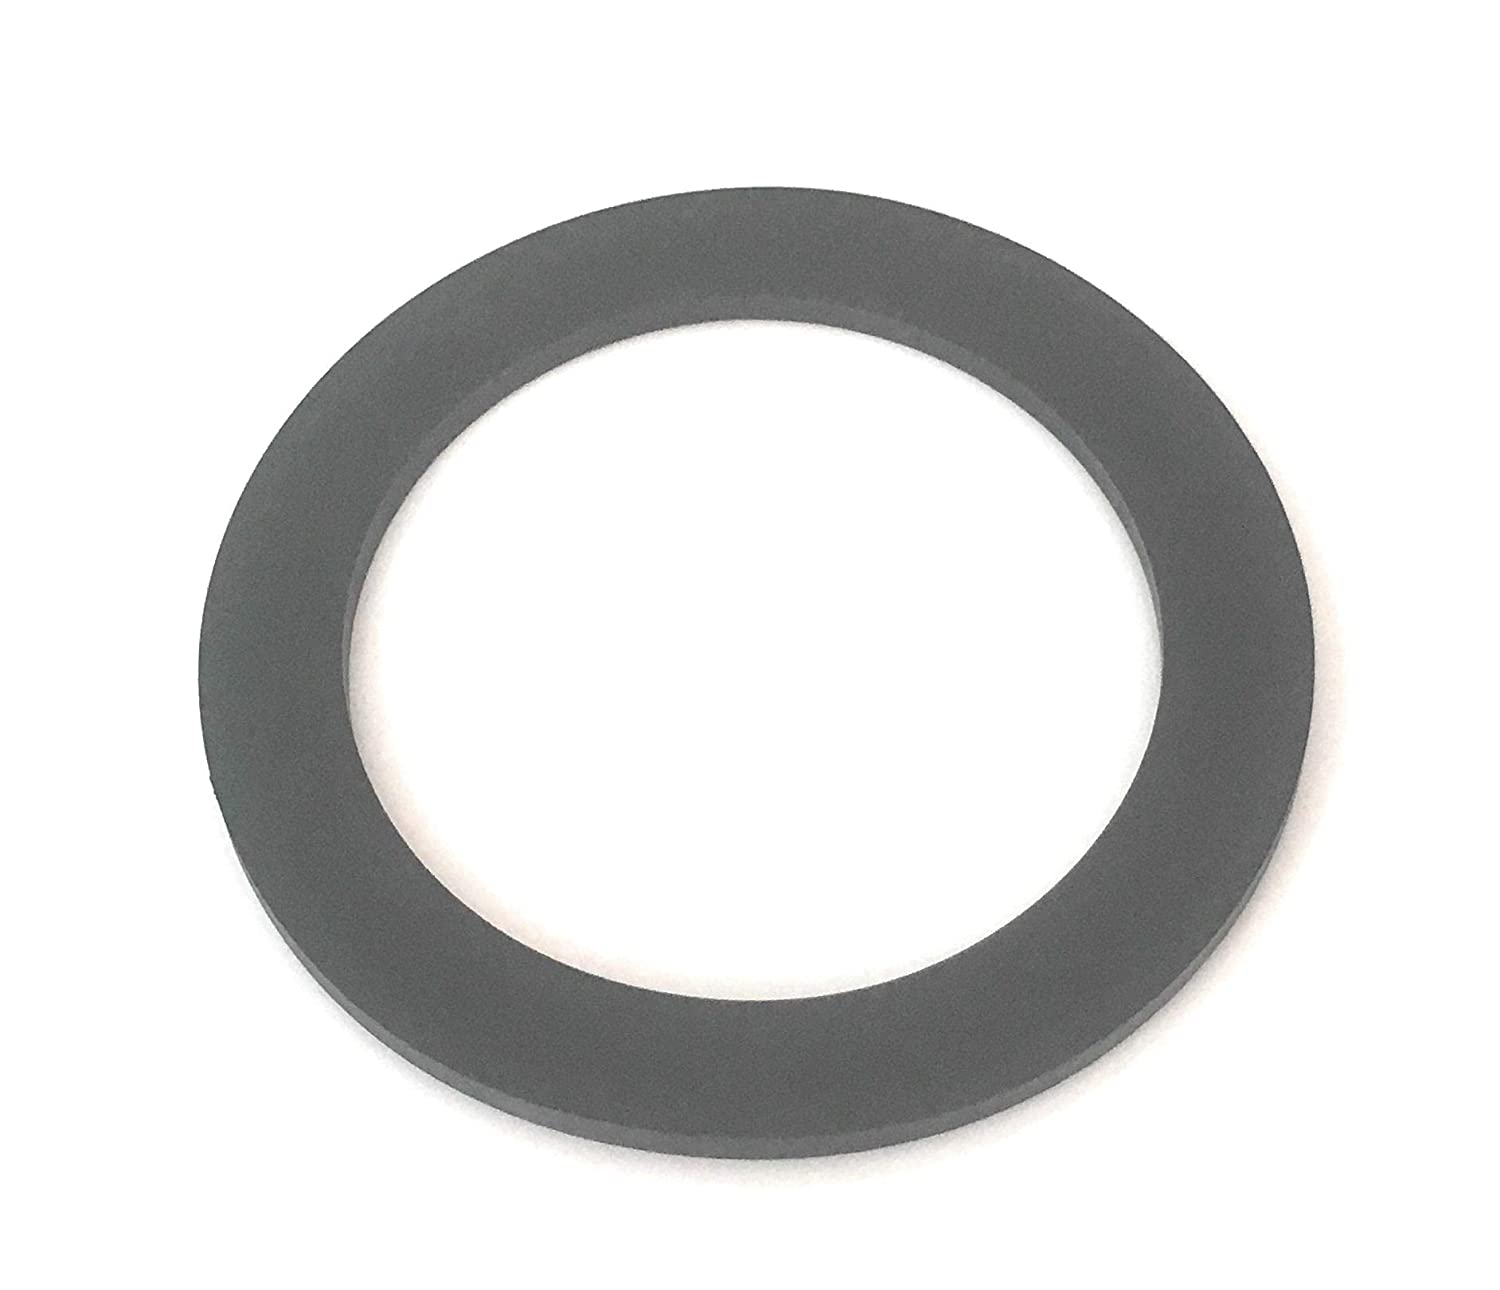 Fab International Replacement Gasket Compatible with Waring Pro Blender Gasket. (AFTER MARKET PART)